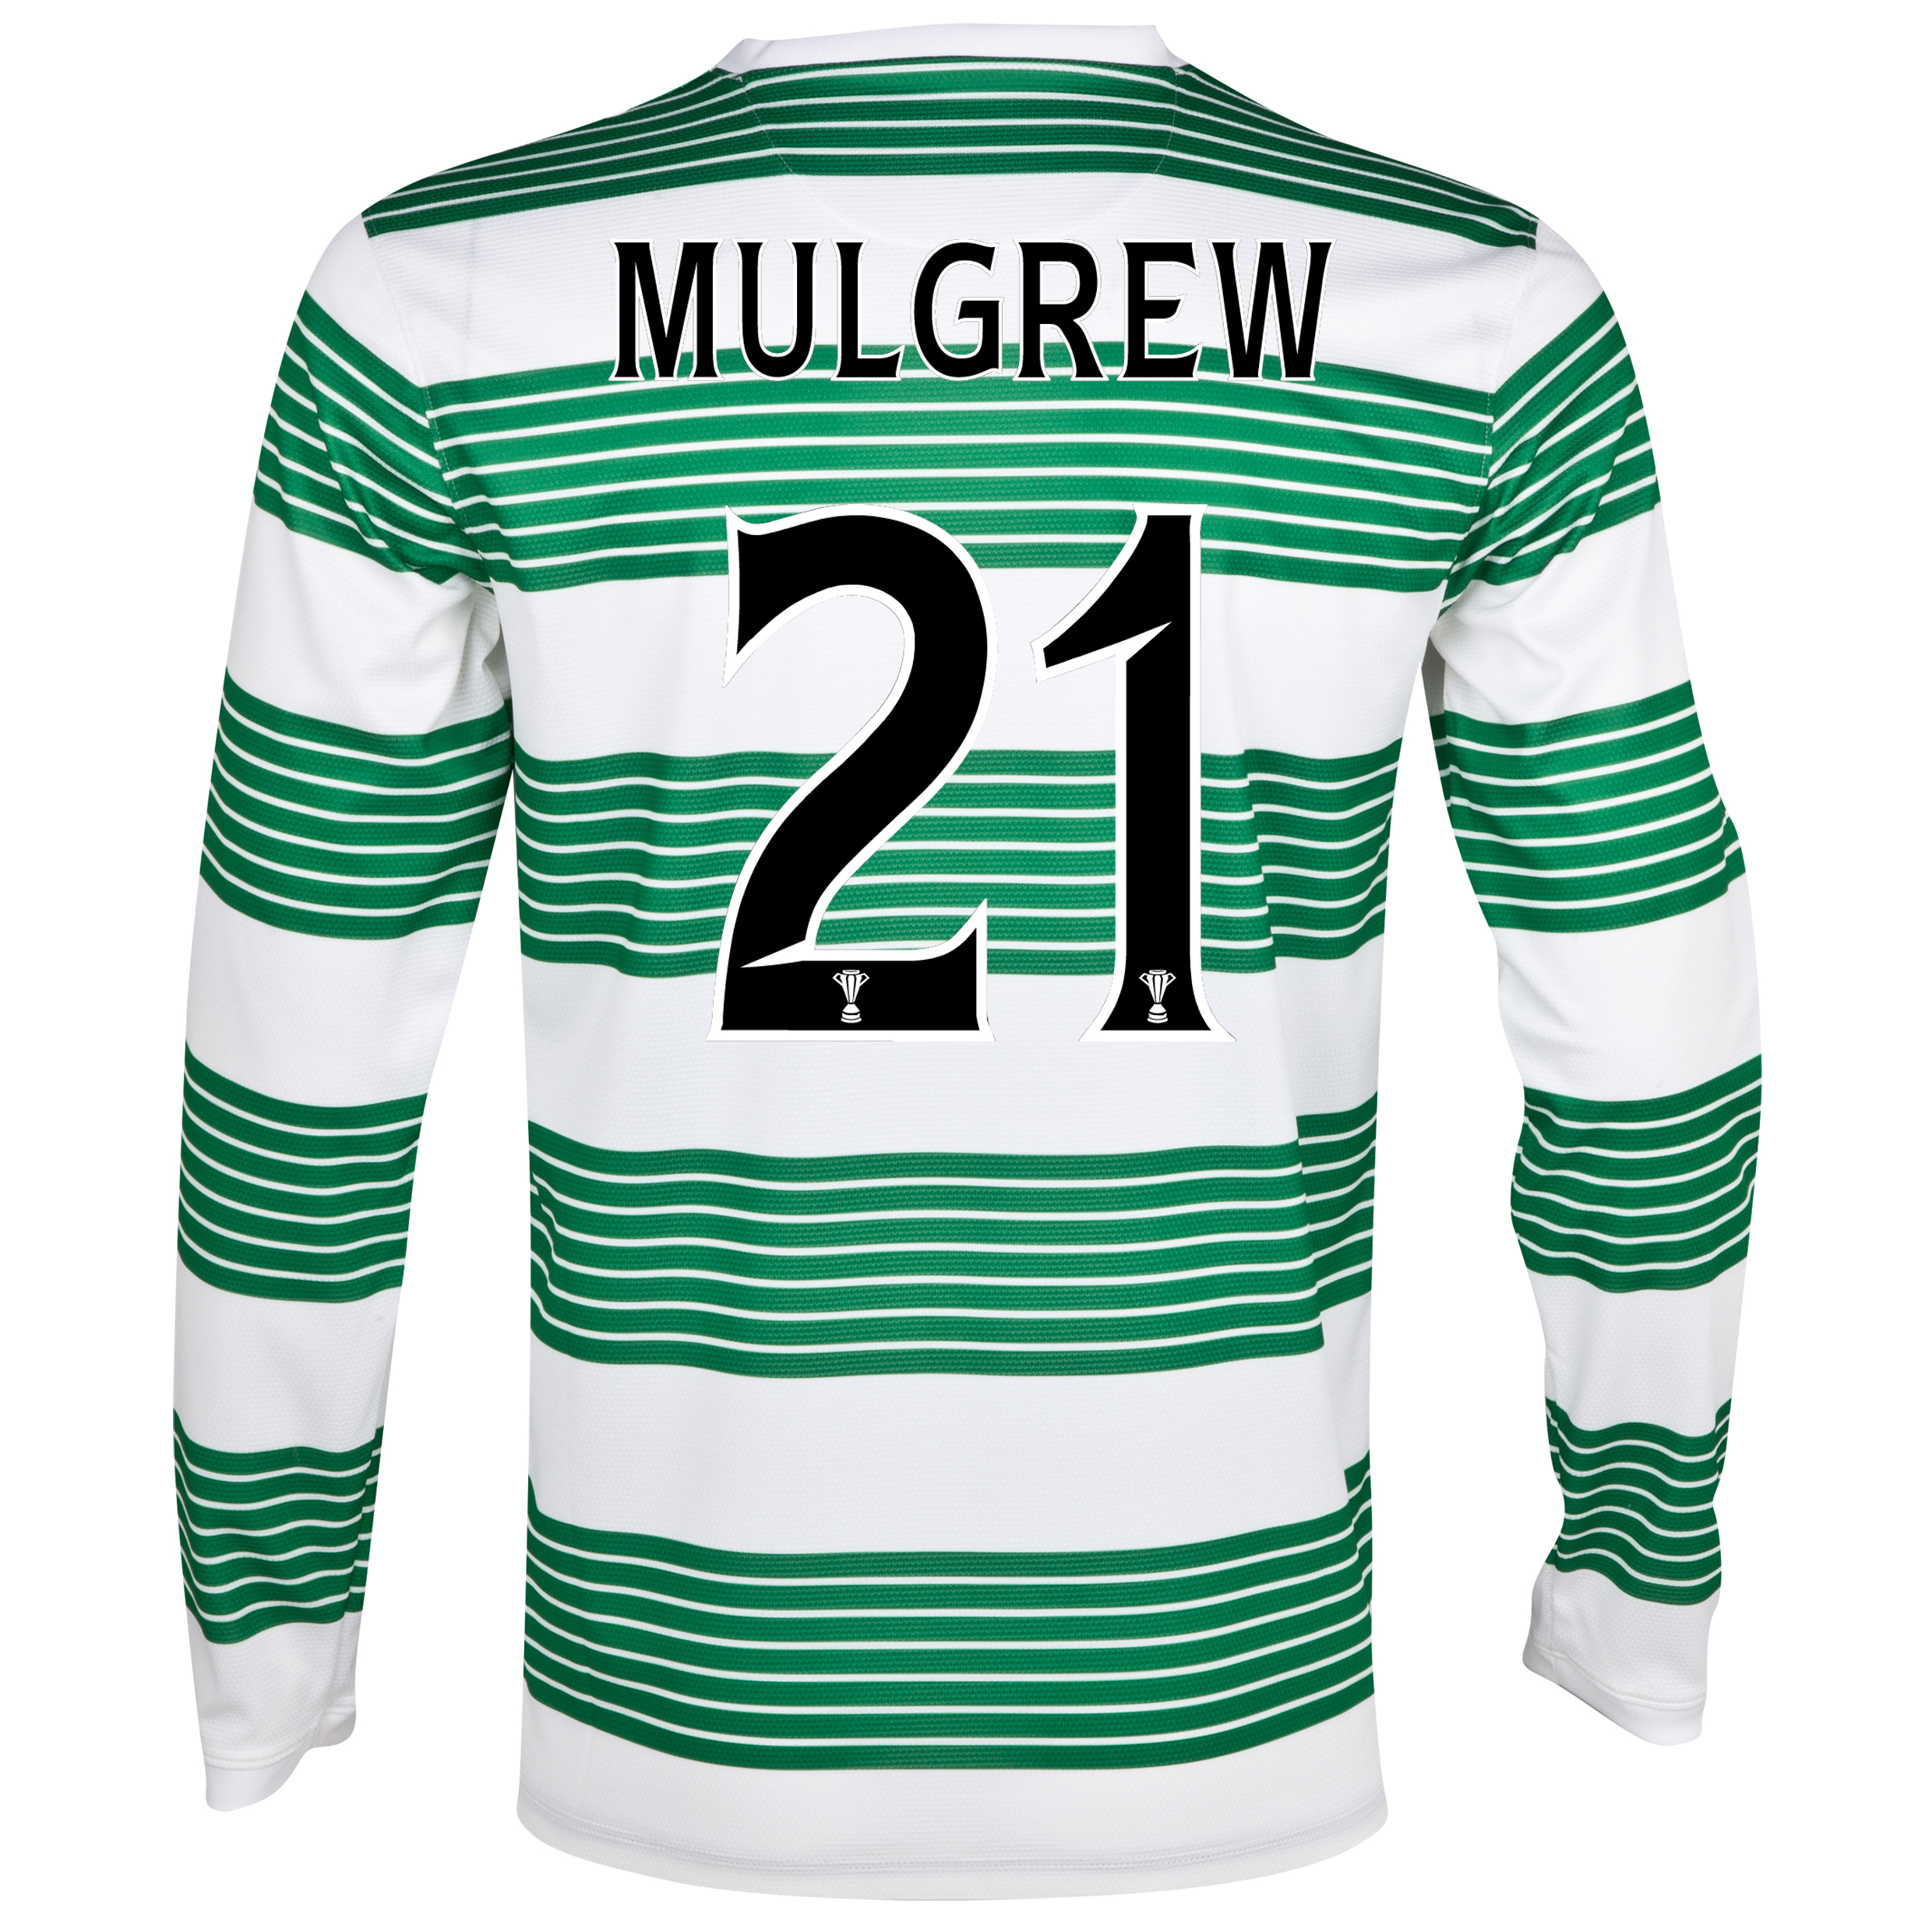 Celtic Home Shirt 2013/14 - L/S- Unsponsored with Mulgrew 21 printing